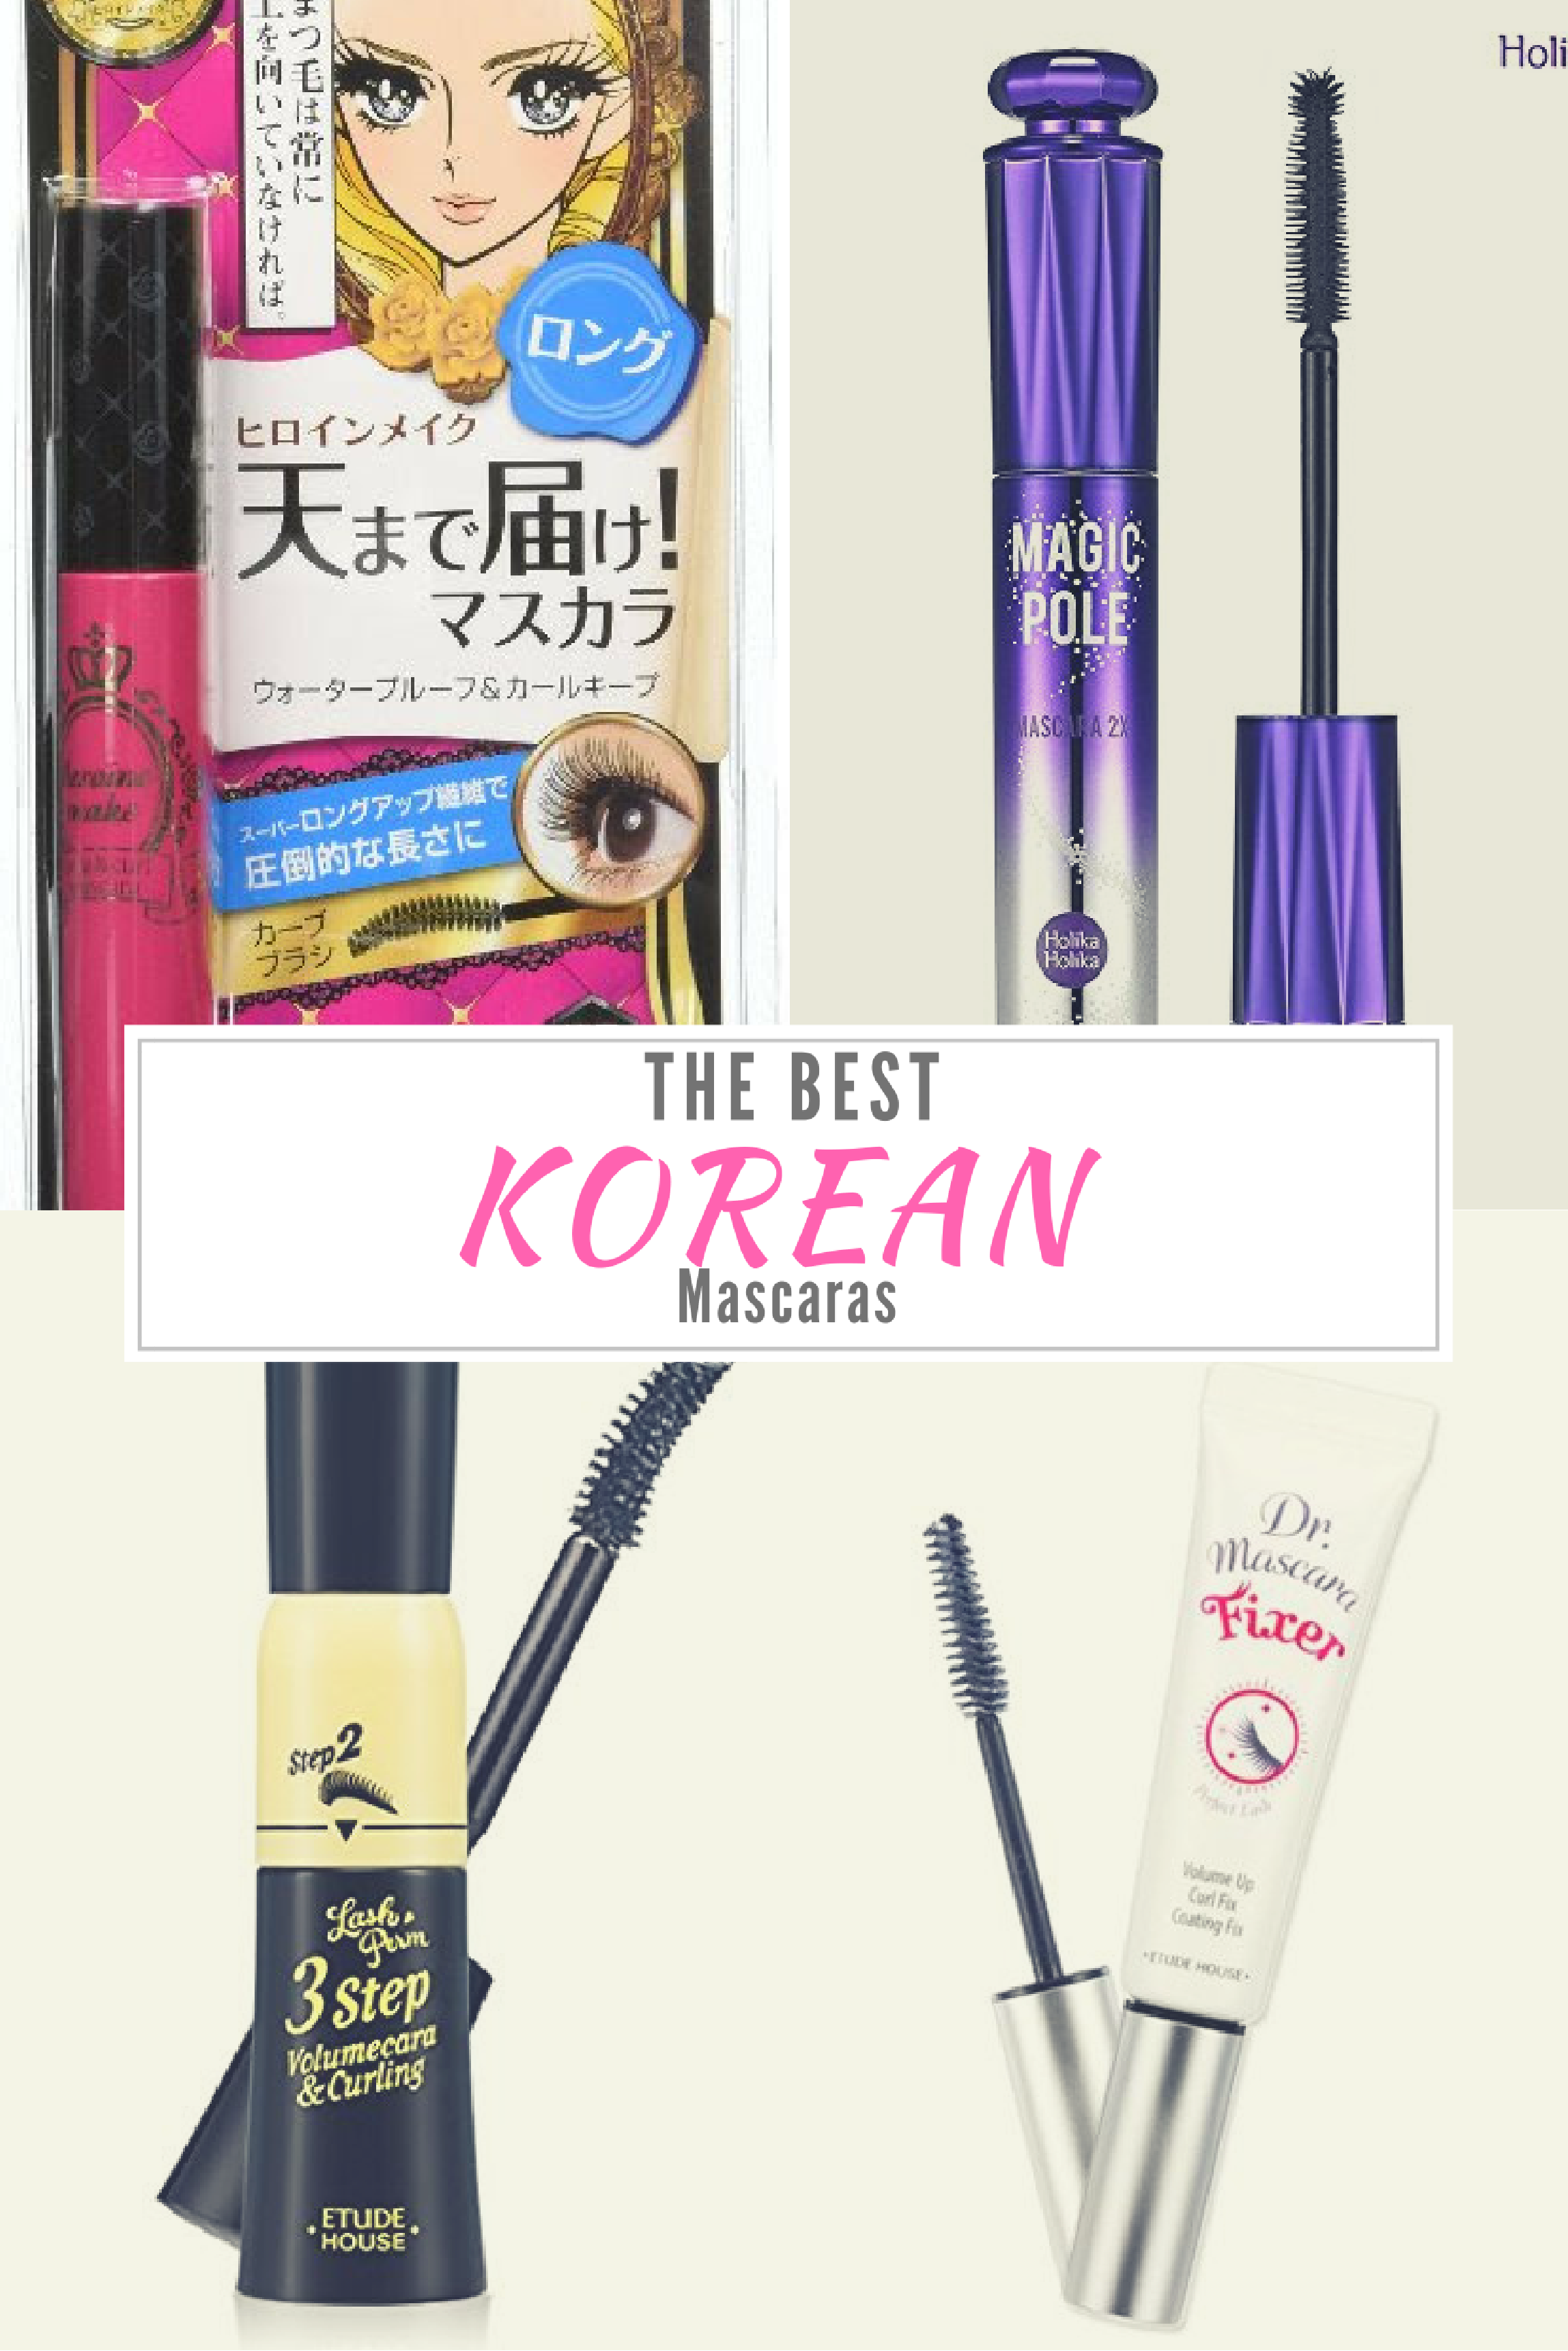 ee507ea6402 Best Korean Mascaras – For all those with short and straight eye lashes you  know the pain of finding the right mascara. The traditional Western mascaras  ...